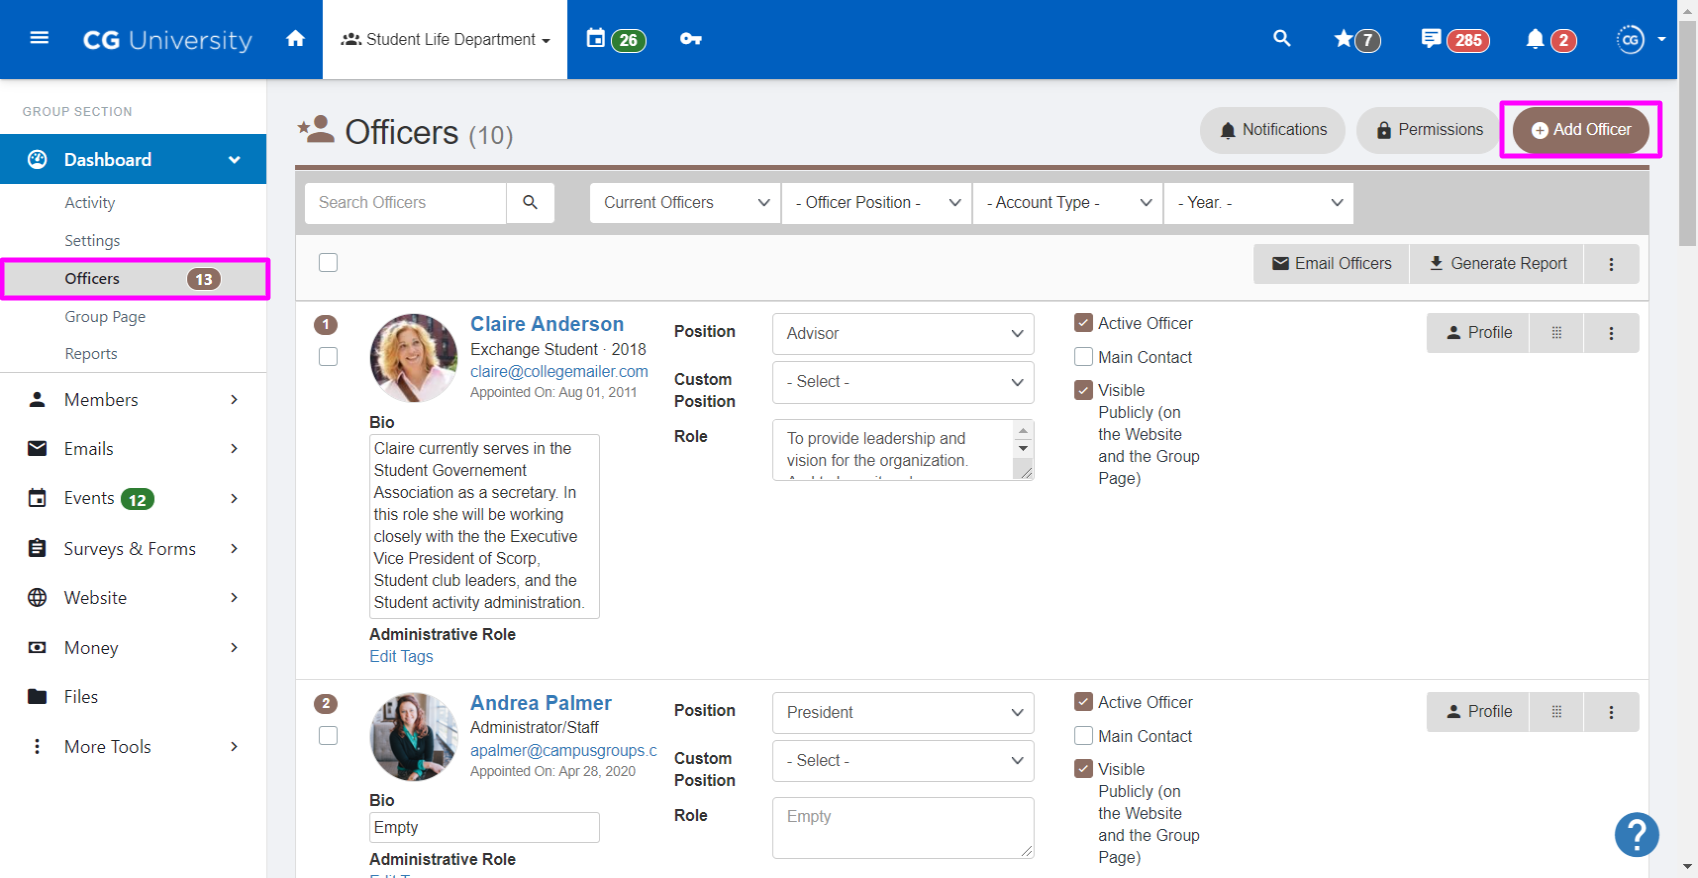 A screenshot highlighting the Add Officer button on the Officers page